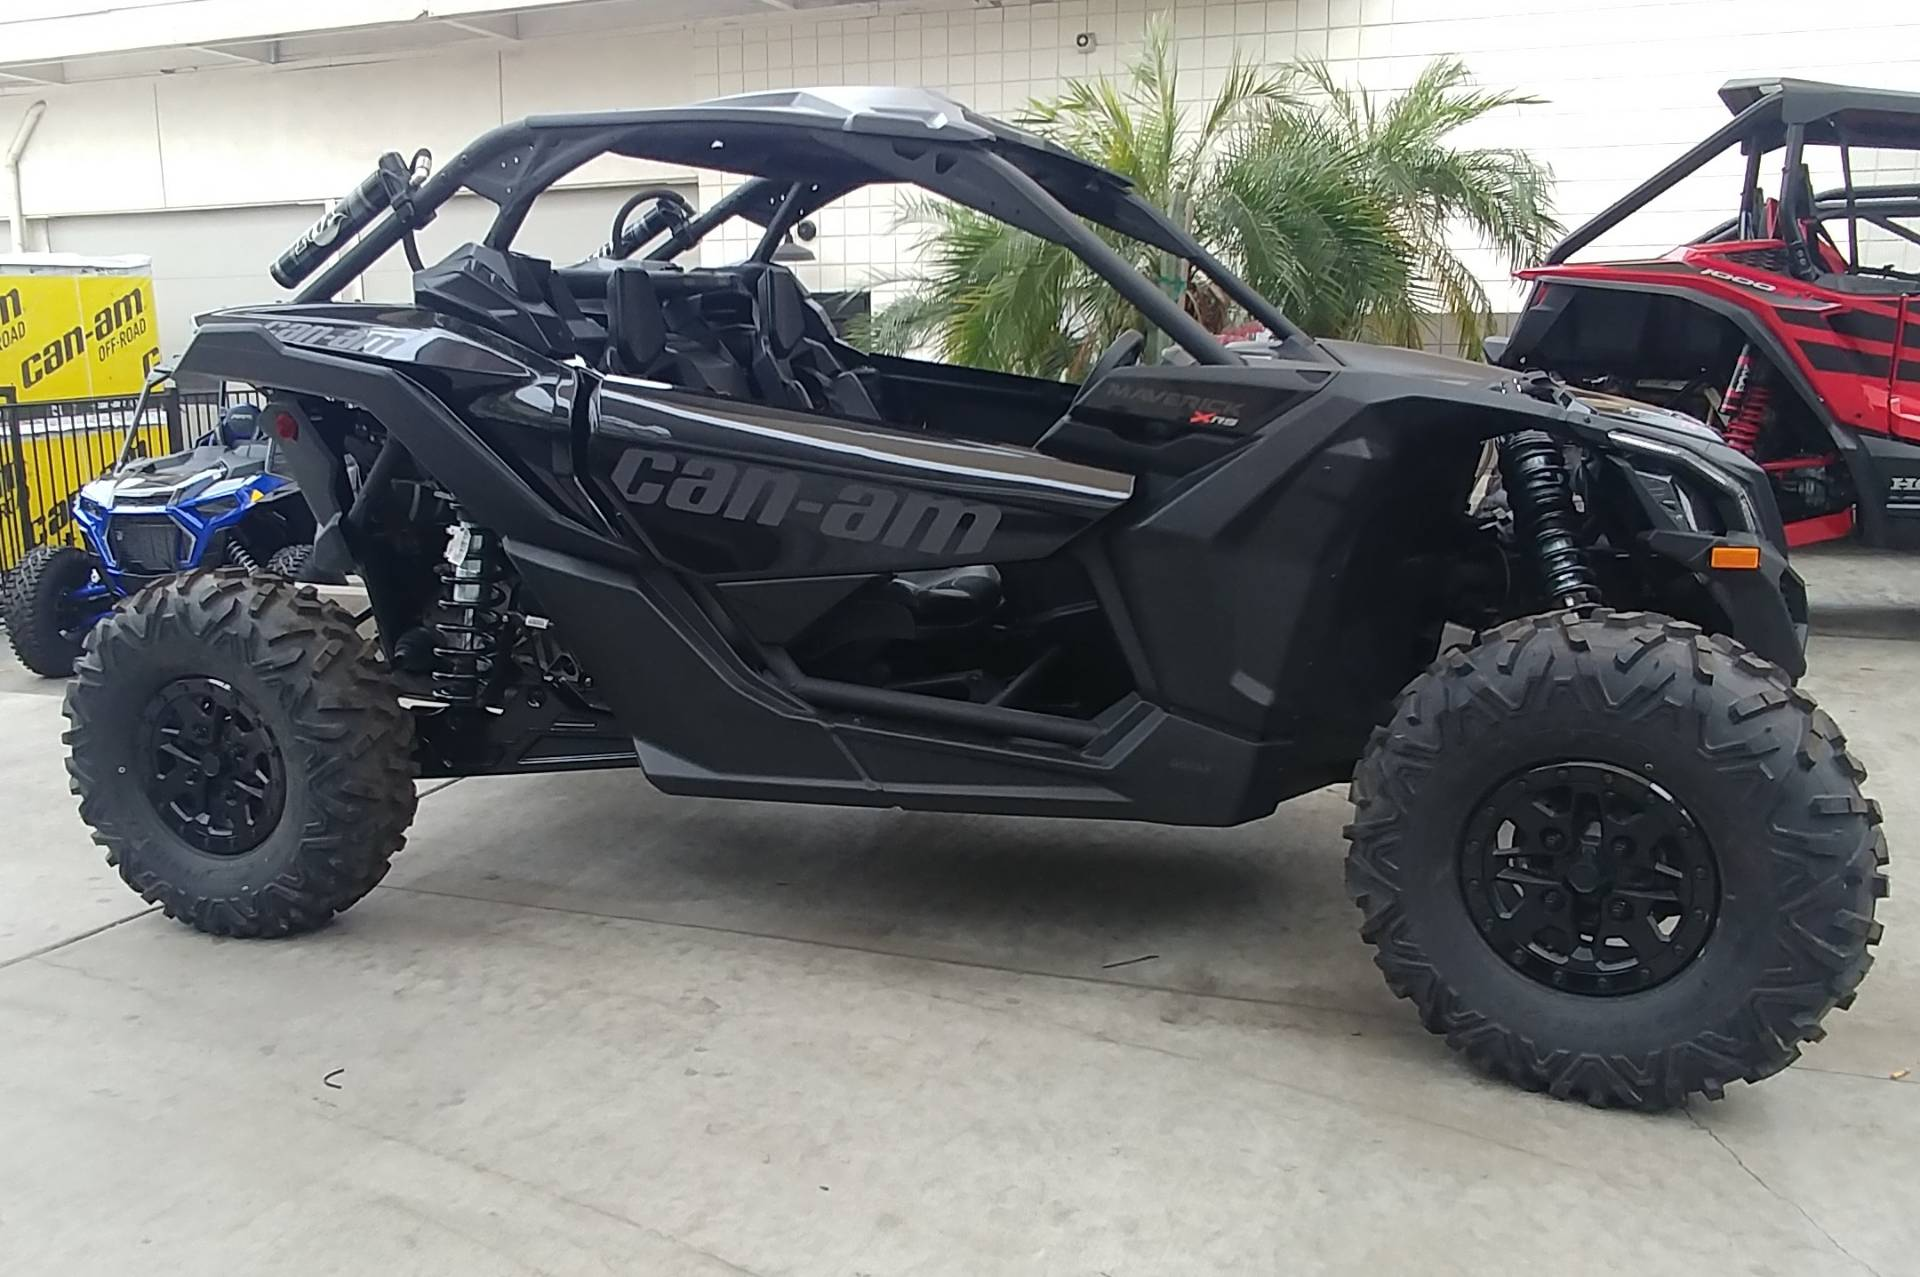 2019 Can-Am Maverick X3 X rs Turbo R in Ontario, California - Photo 3